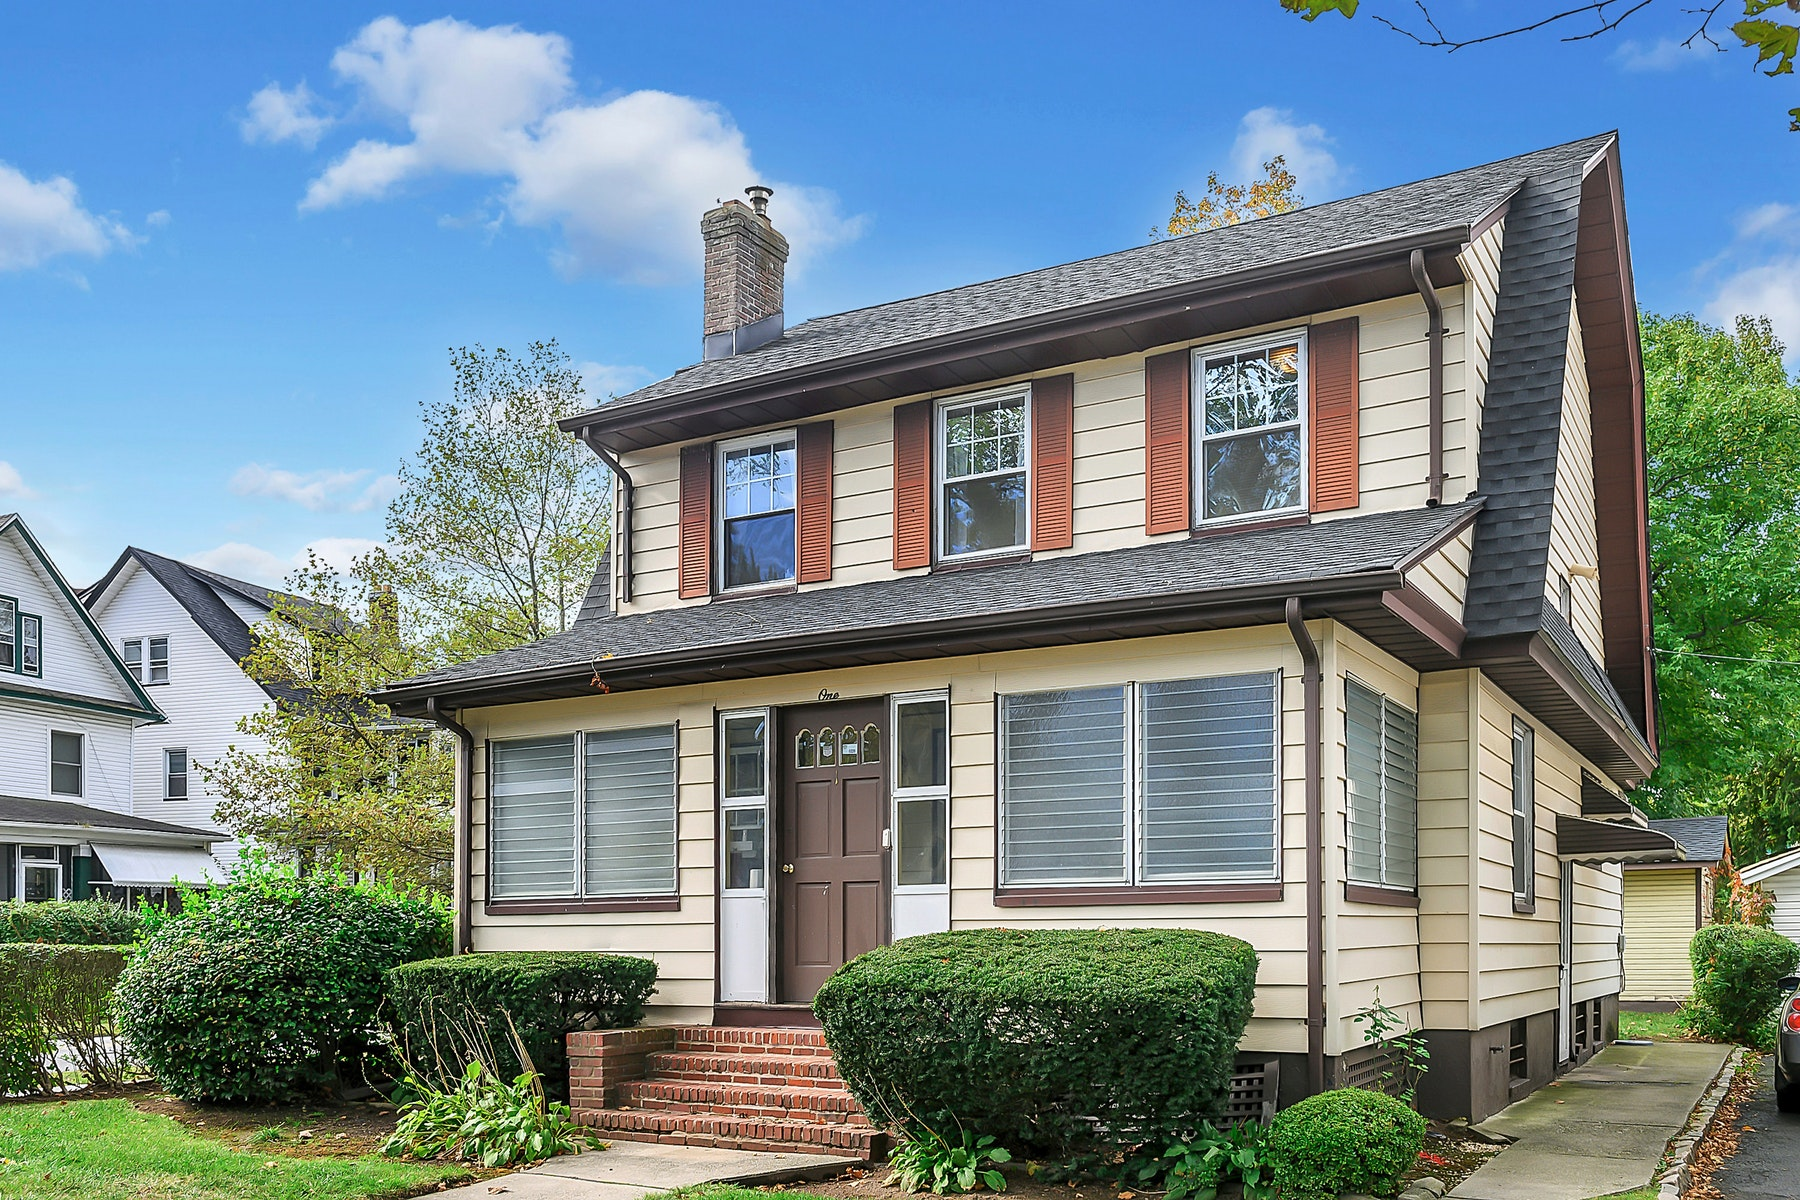 Single Family Homes for Sale at Charming Colonial 1 Roosevelt Avenue East Orange, New Jersey 07017 United States